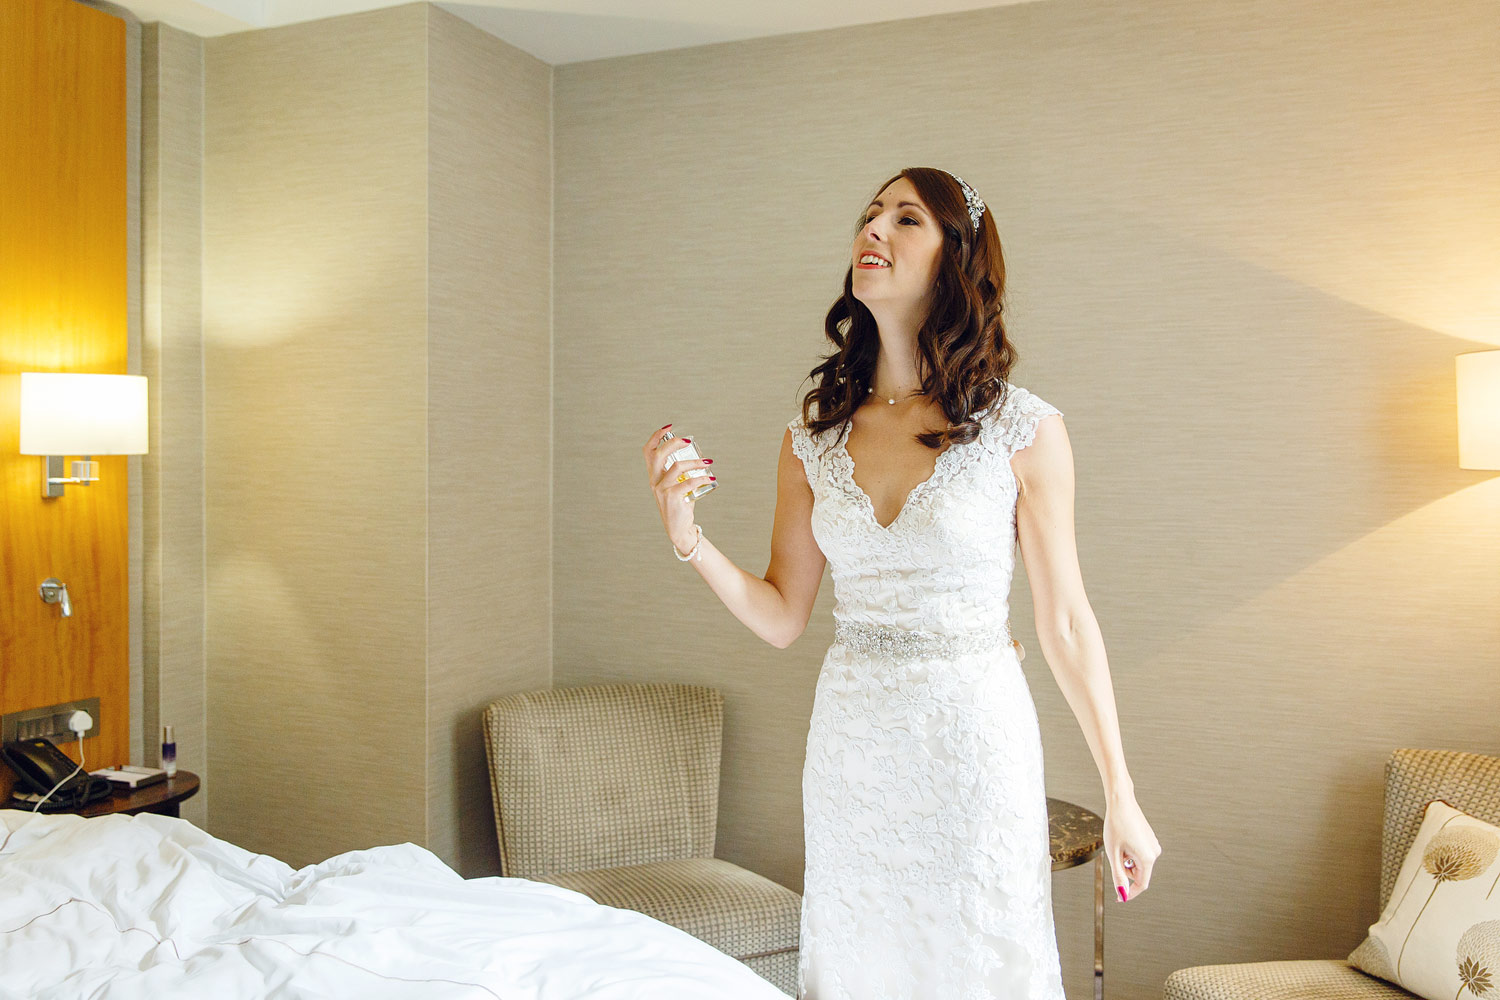 A bride sprays Jo Malone perfume and wears a Kenneth Winston Dress at the Conrad St James Hotel